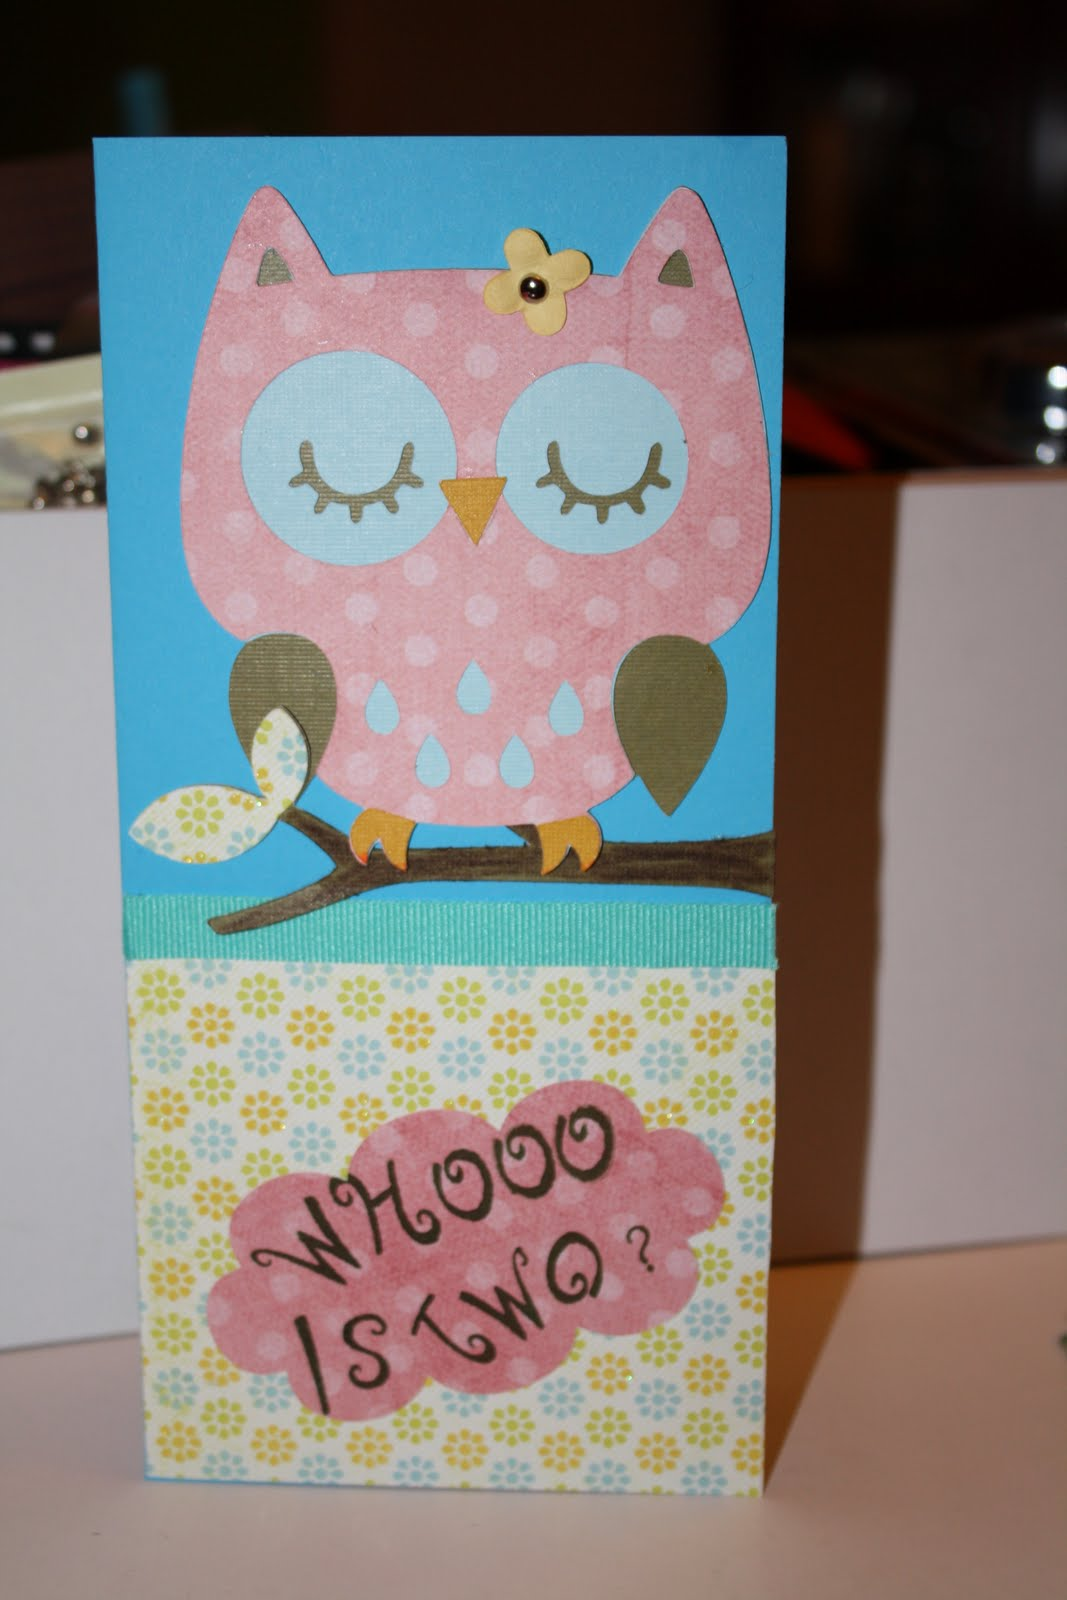 Sallie sweet sewing and cricut crafts birthday card for for Friendship crafts for 2 year olds